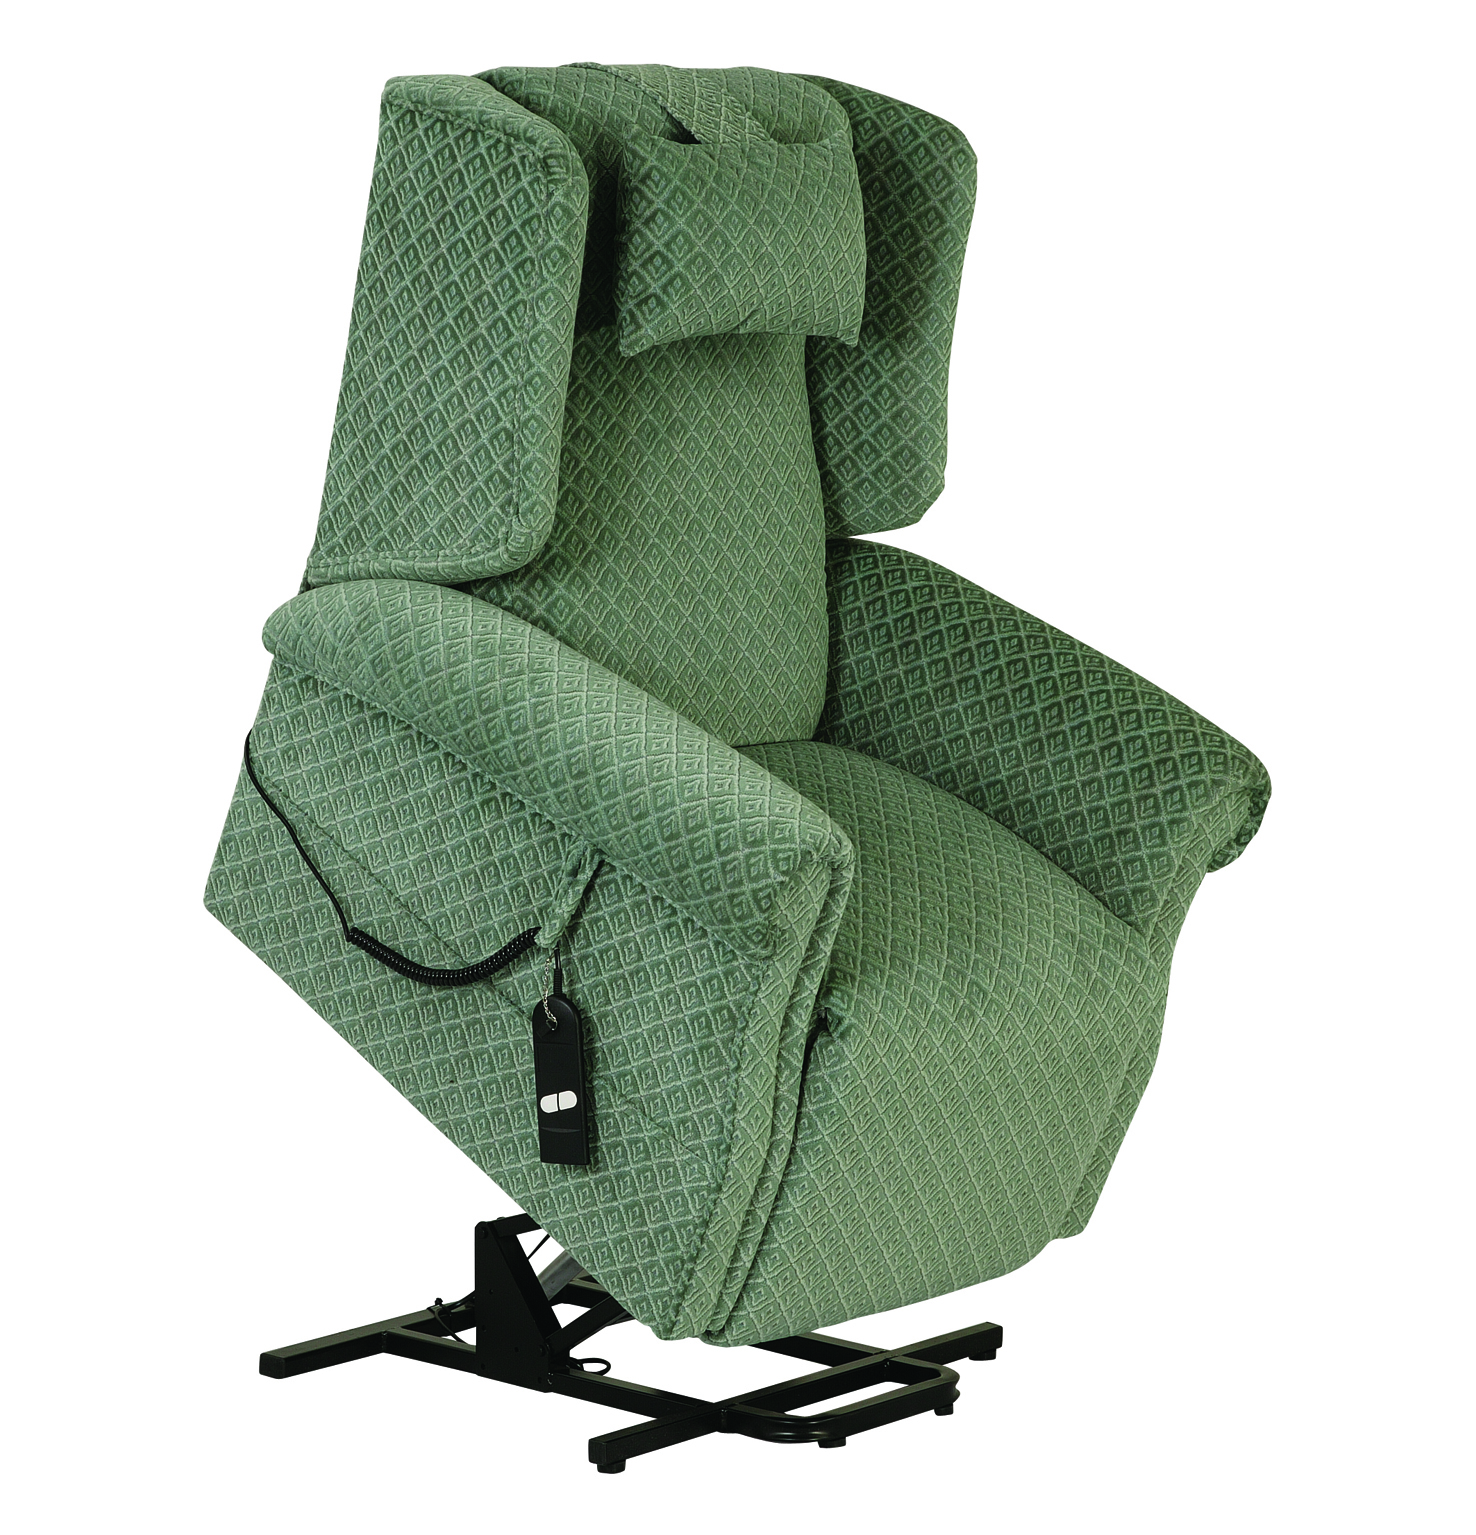 These Chairs Only Have 2 Simple To Push Buttons On The Hand Control Unit  Making Them Very Easy To Use. The Recline Button Will Raise The Leg Section  And ...